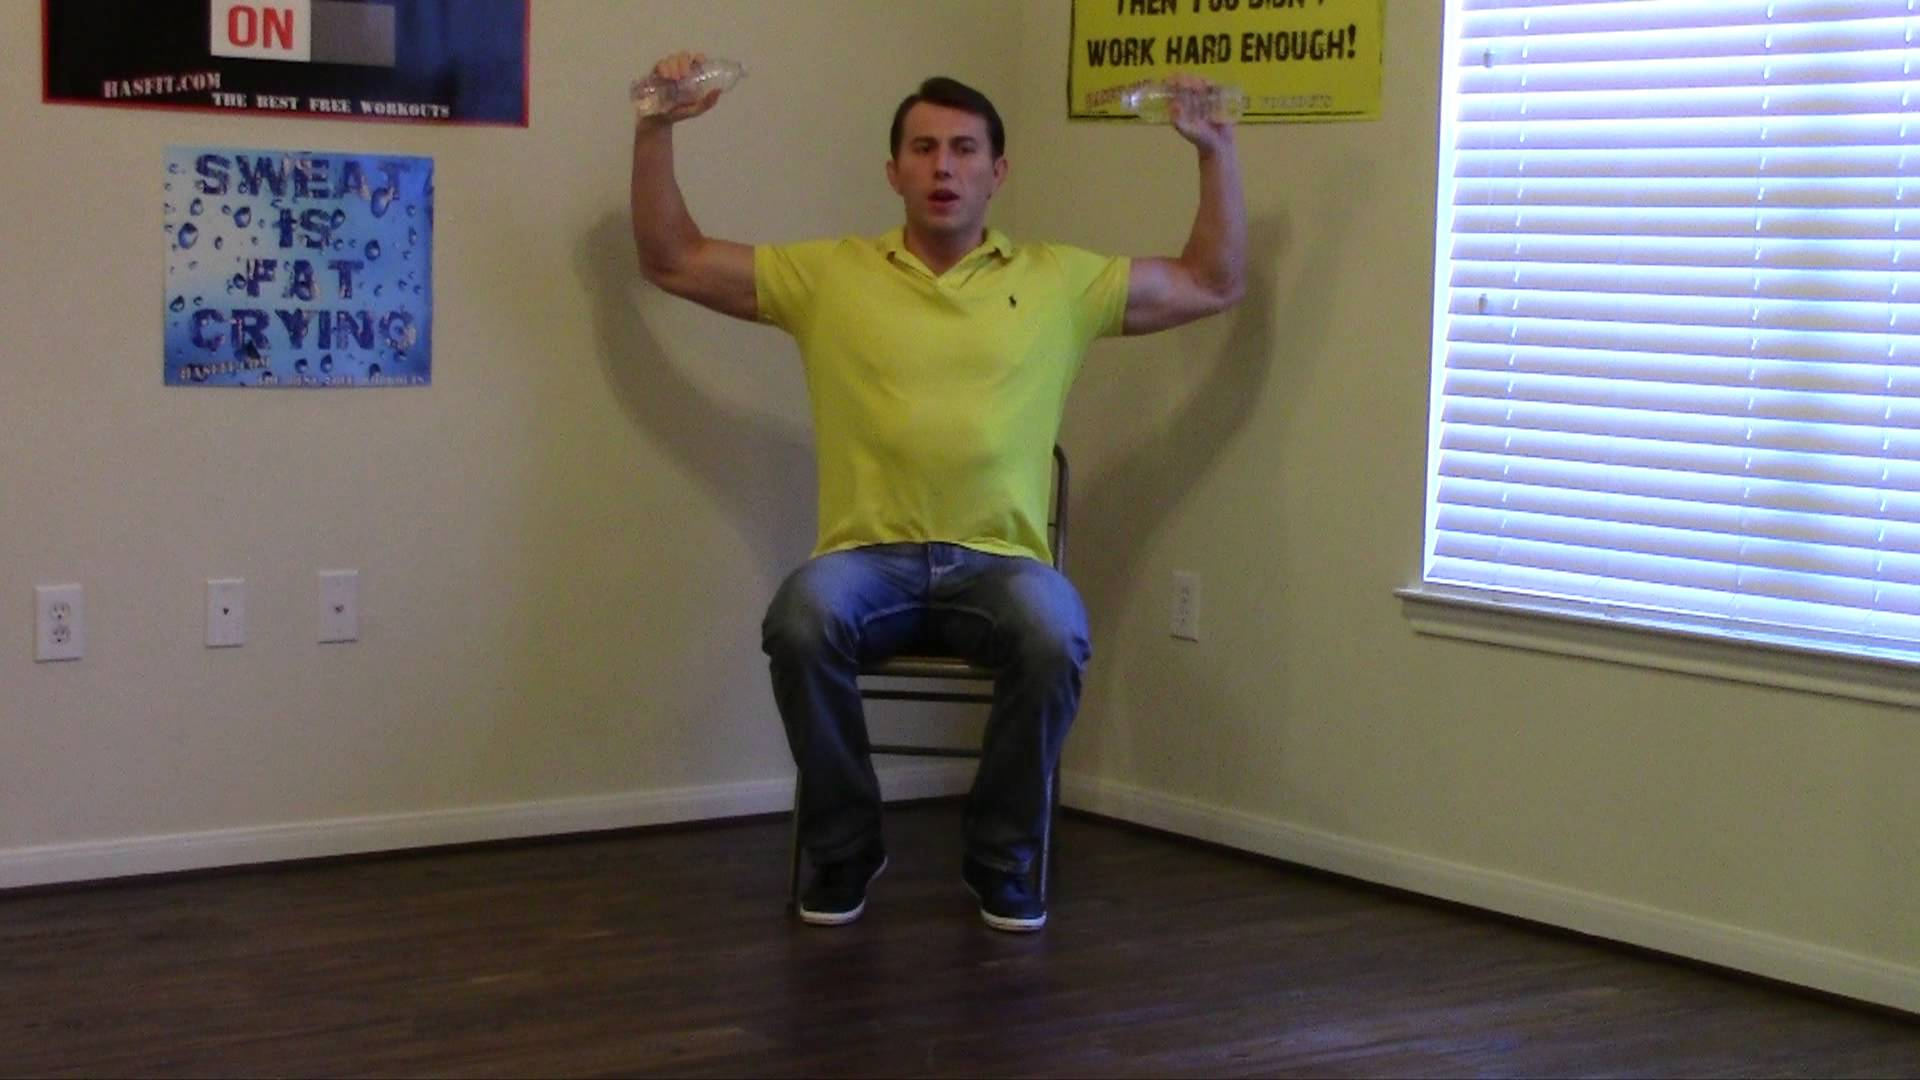 15 Min Work Workout - How to Exercise at Work - HASfit Office Exercises - Desk Exercises at Work 4